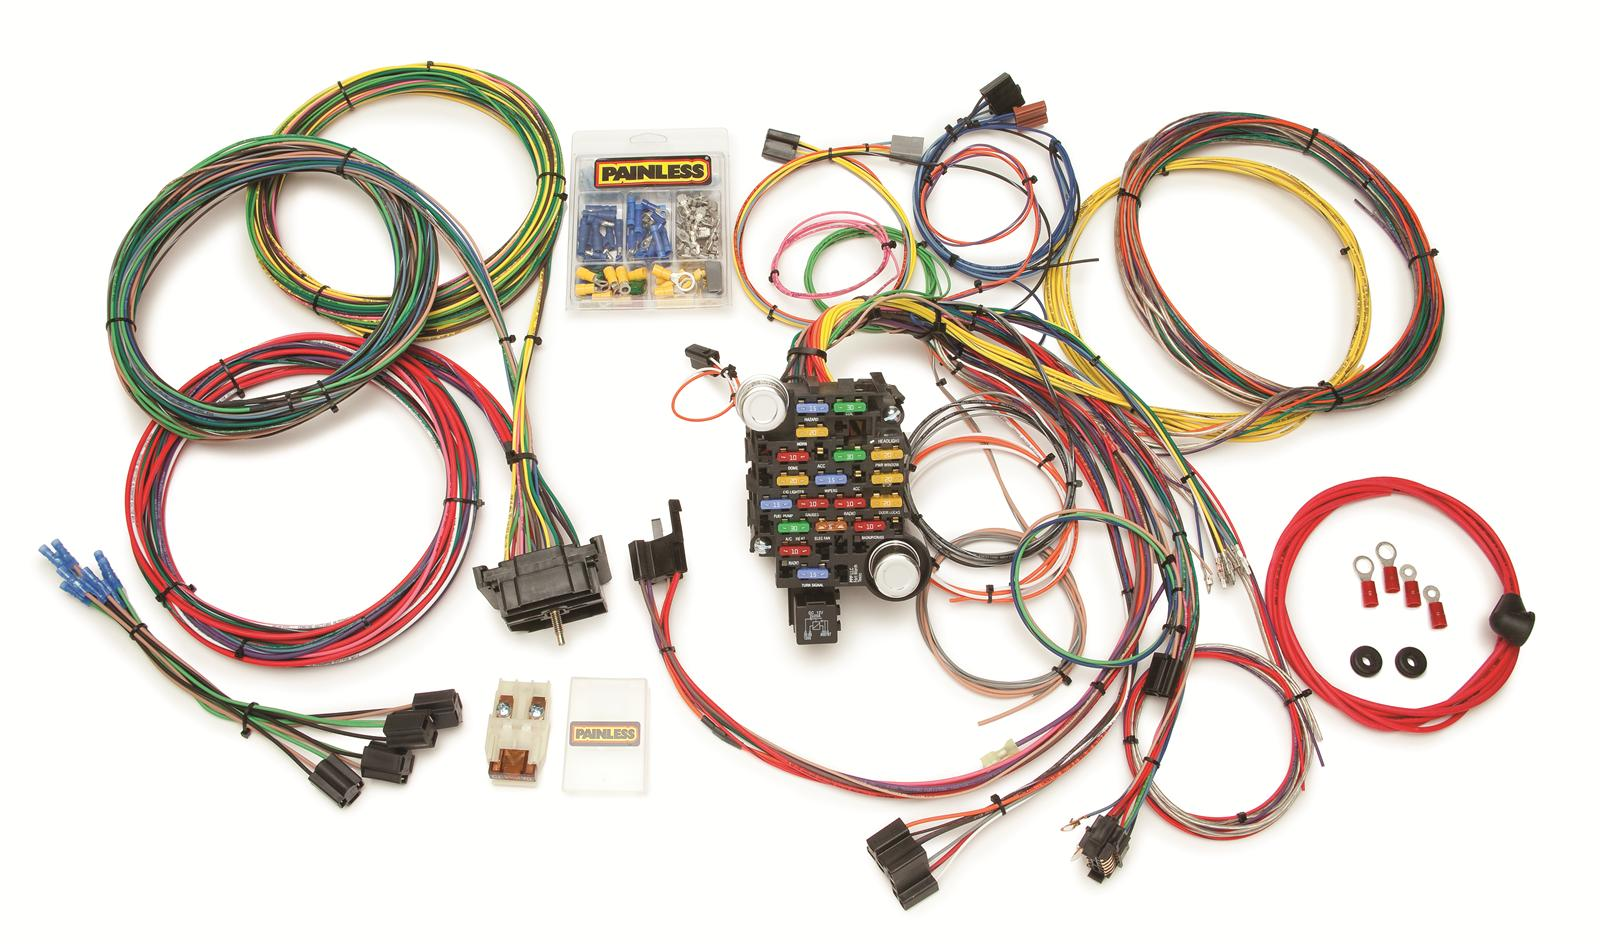 prf 10206_xl painless performance gmc chevy truck harnesses 10206 free Painless Wiring Harness Diagram at n-0.co